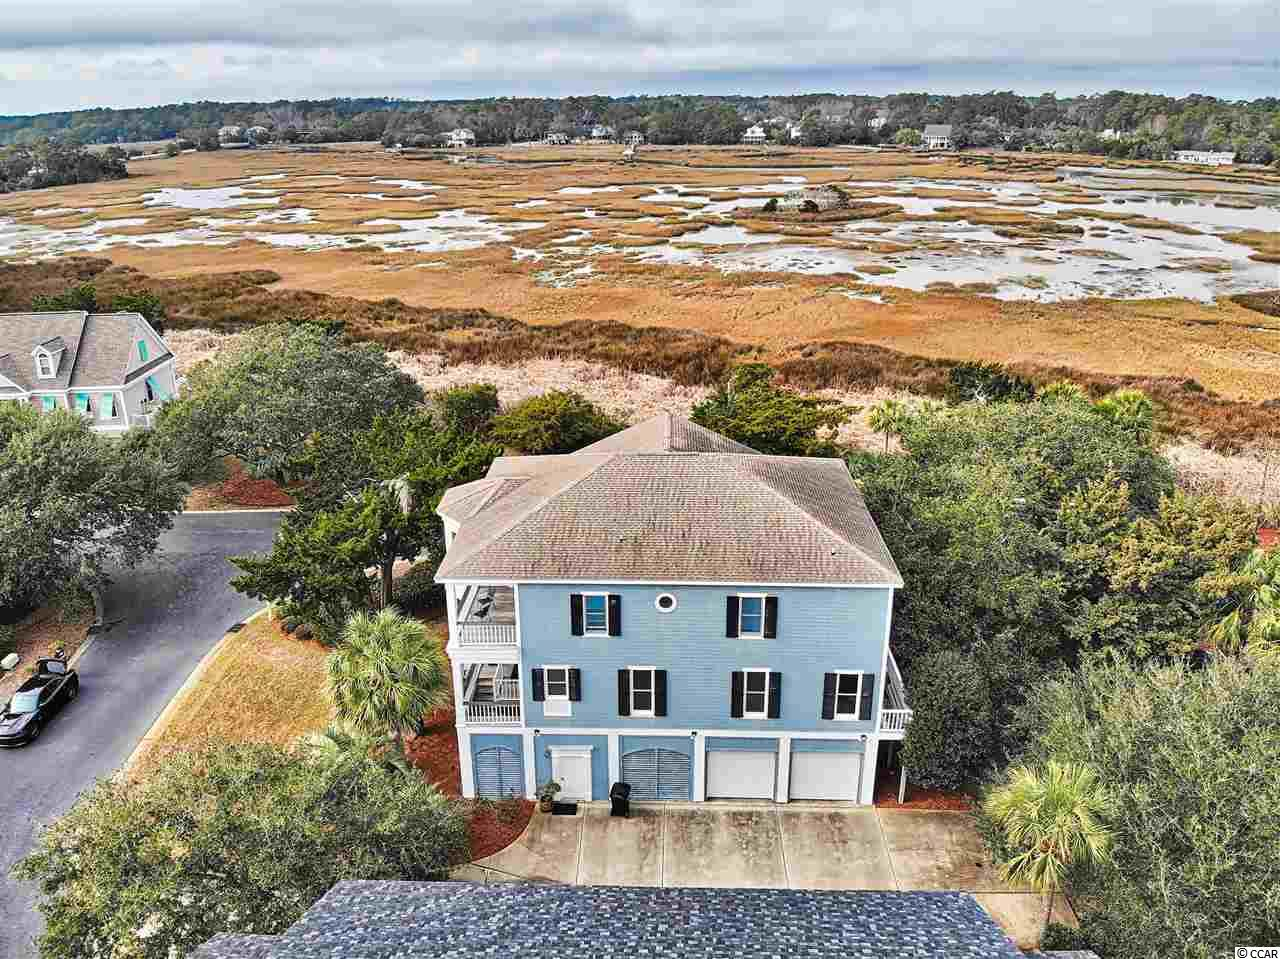 Drastically Reduced!   Awesome opportunity, Owner says Sell!  By far - already the lowest priced home in the community...    In one of the premier coastal communities in historic Pawley's Island.   Litchfield  By The Sea.   Only steps to the ocean. Plenty of balconies - Grab your coffee and commune with nature with ocean and marsh views.  Fully furnished and move in ready.  5 bedrooms, 4 baths,  large kitchen with gas cook top, granite, wood floors, elevator, private landscaping on one of the largest lots in the community.   Fishing / crabbing docks, tons of walking / biking areas and of course the beach.     So come make your offer!!!